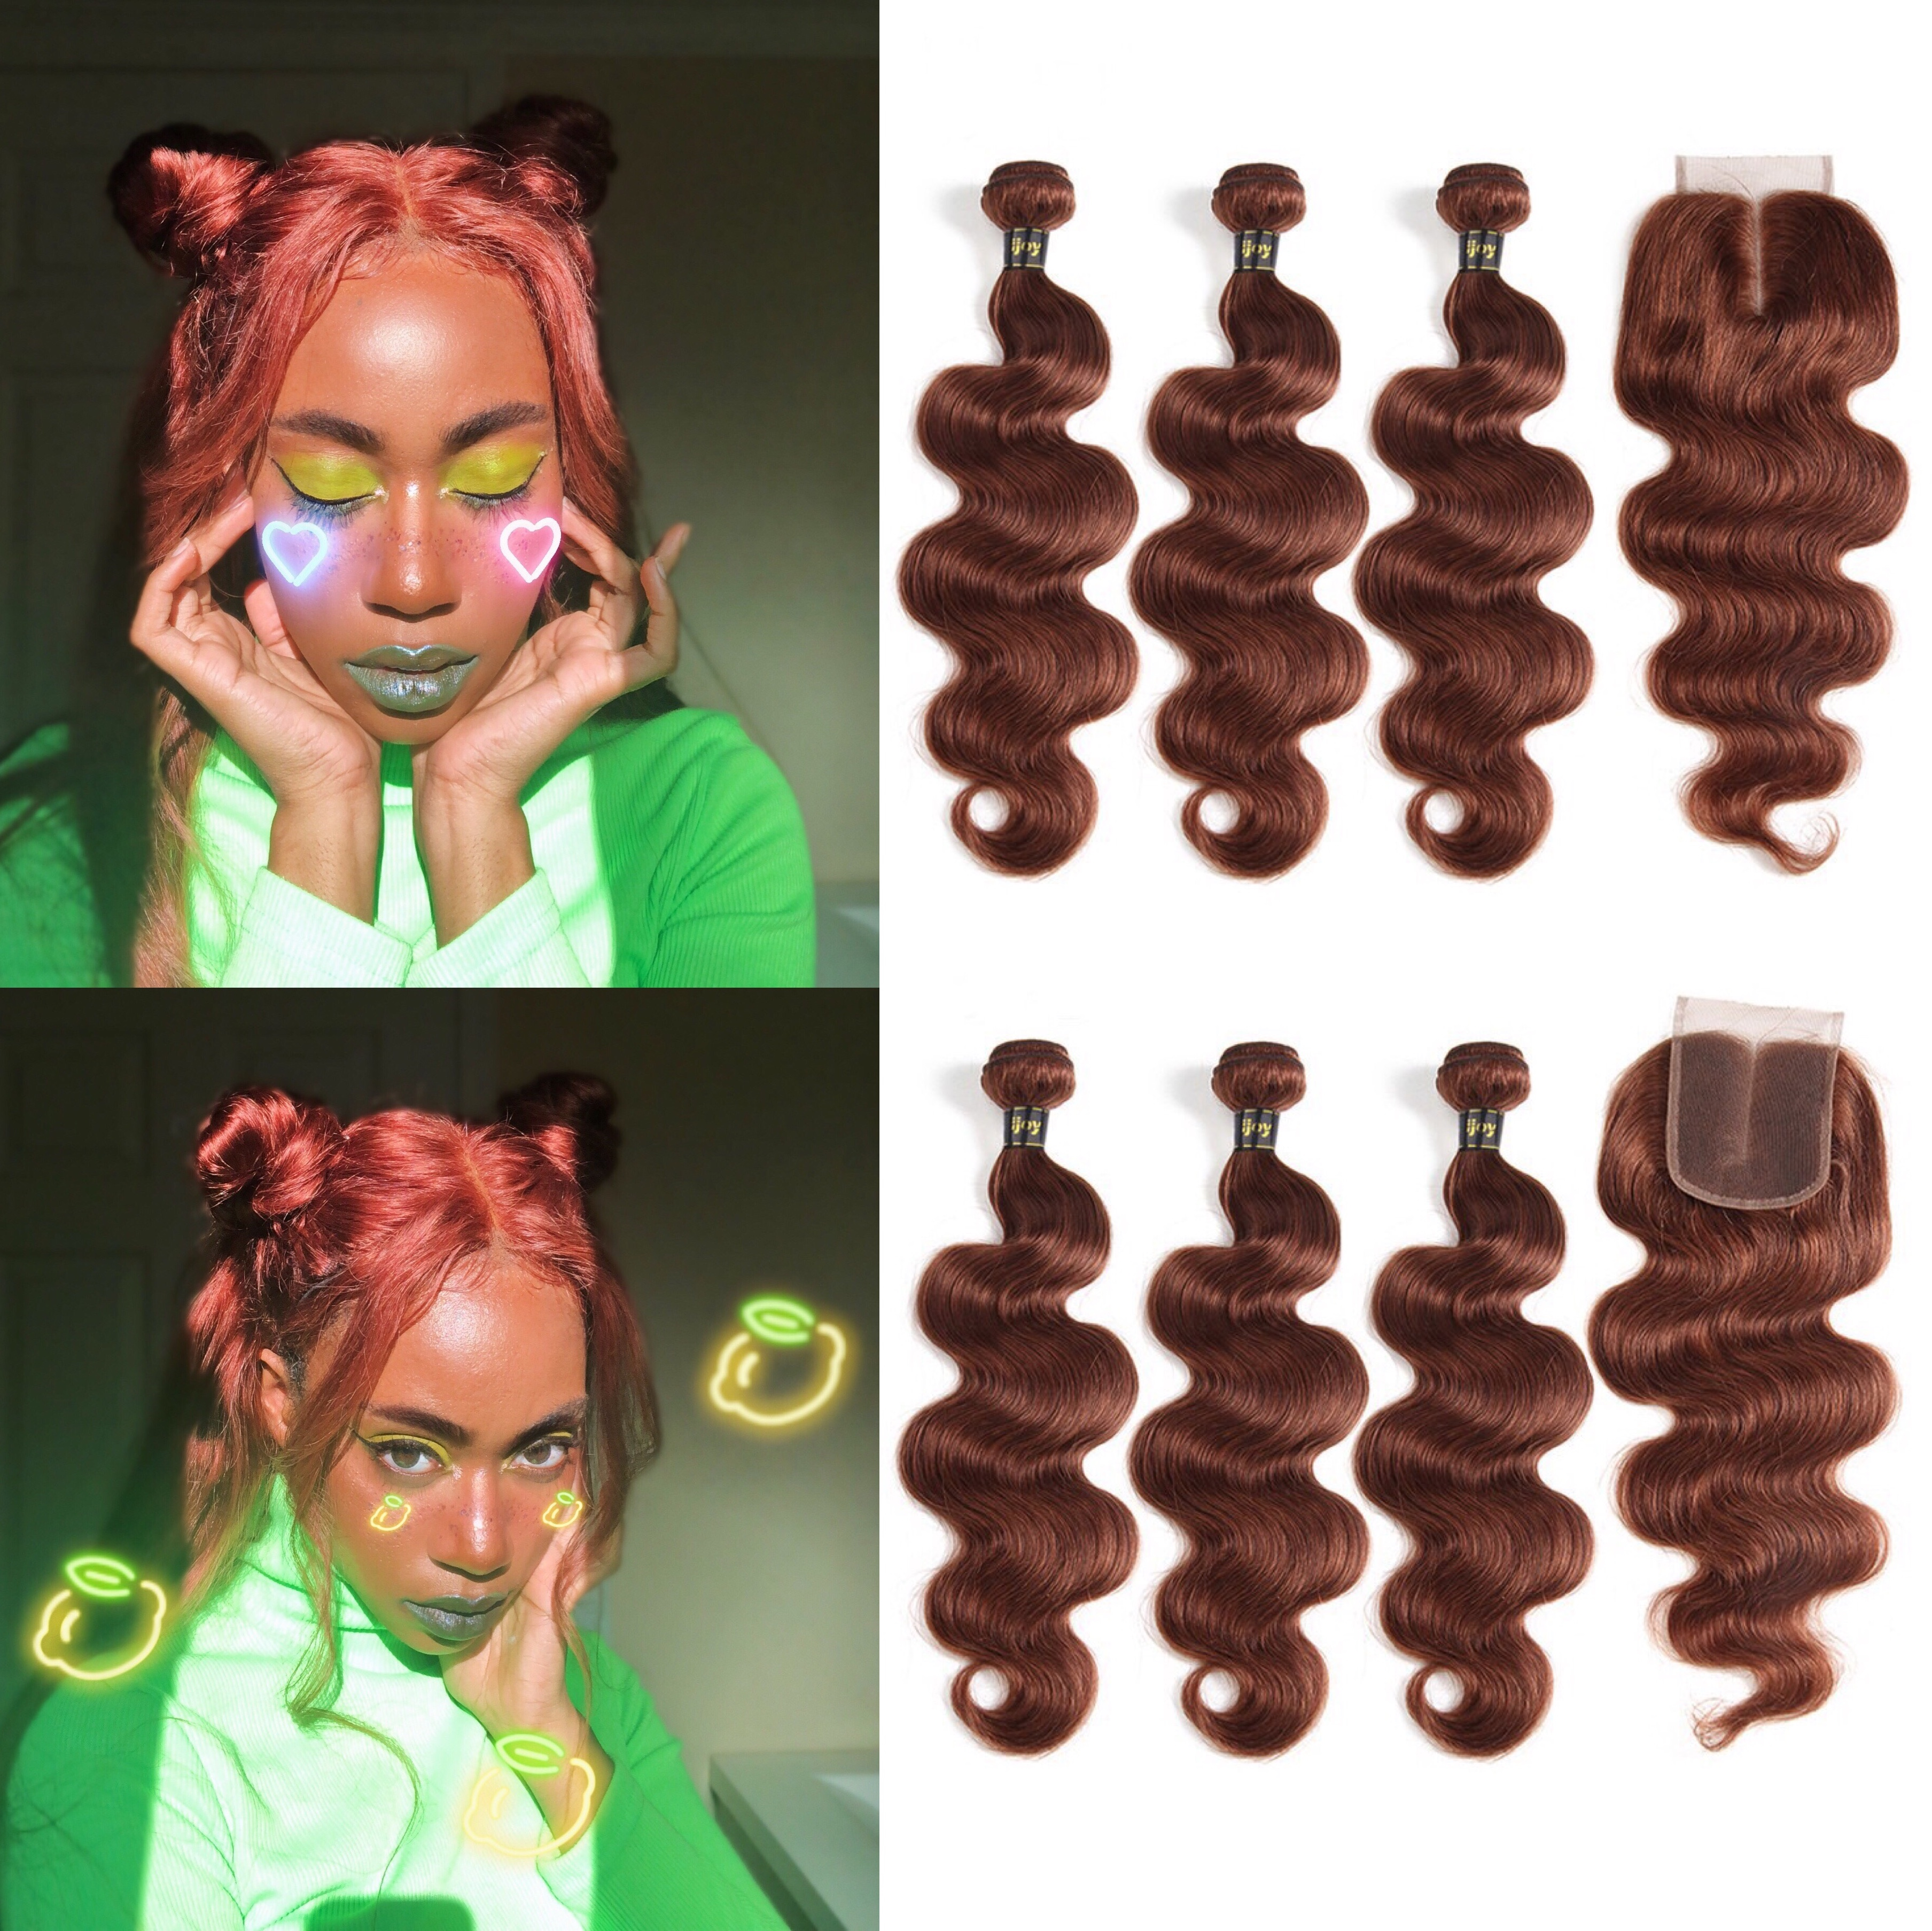 Colored Bundles With Closure #33 Copper Bundles 4x4 Red Body Wave Human Hair 8-26inch Brazilian Hair Weave Bundles Non-Remy IJOY